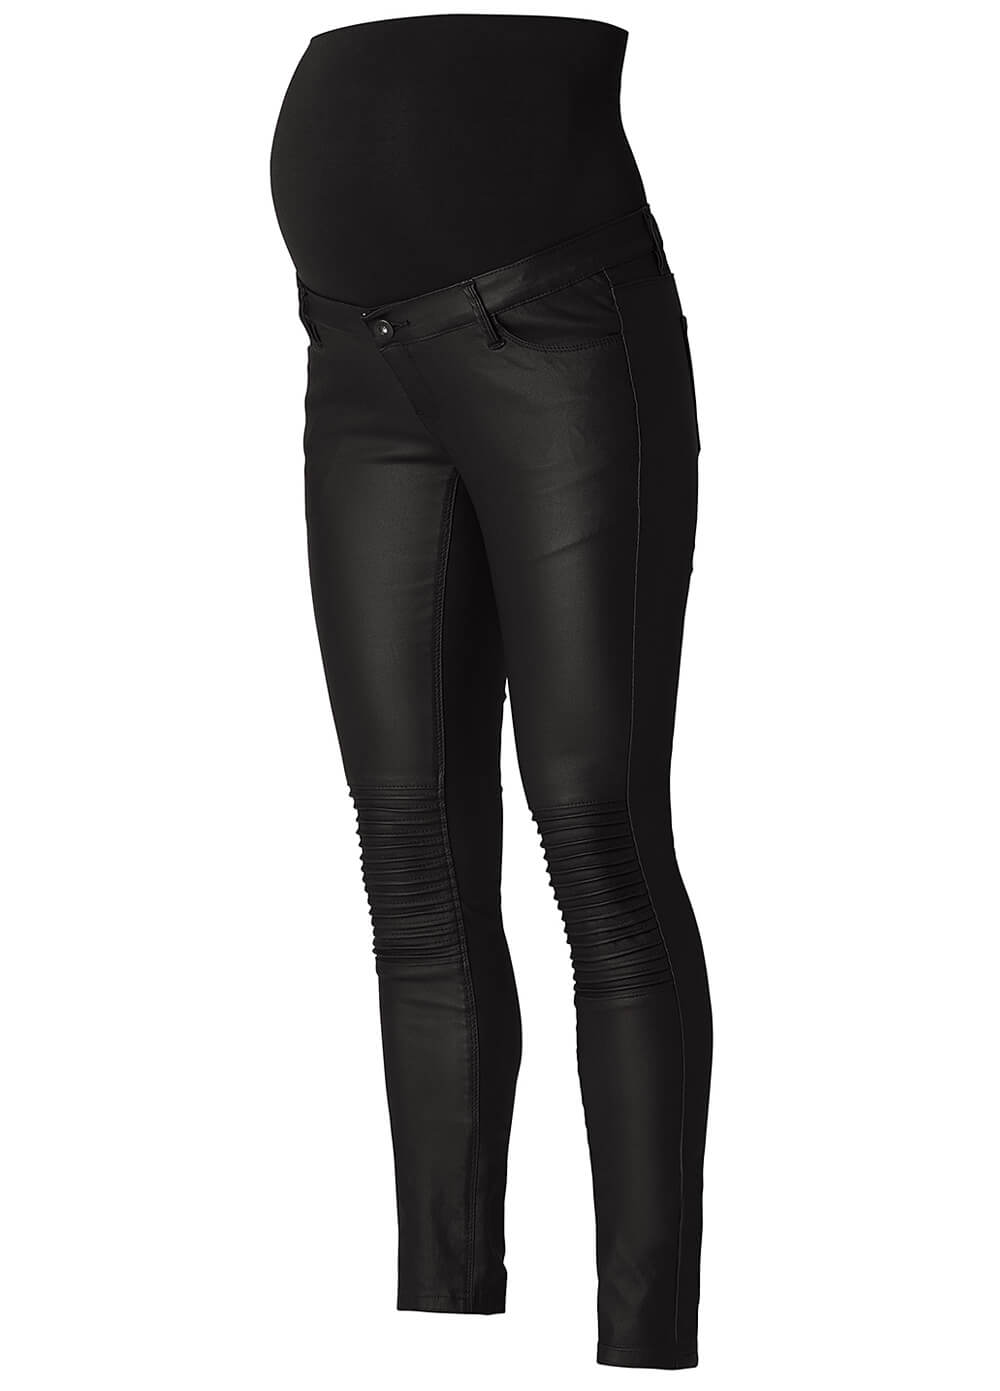 Jessie Coated Skinny Black Maternity Jeans by Noppies